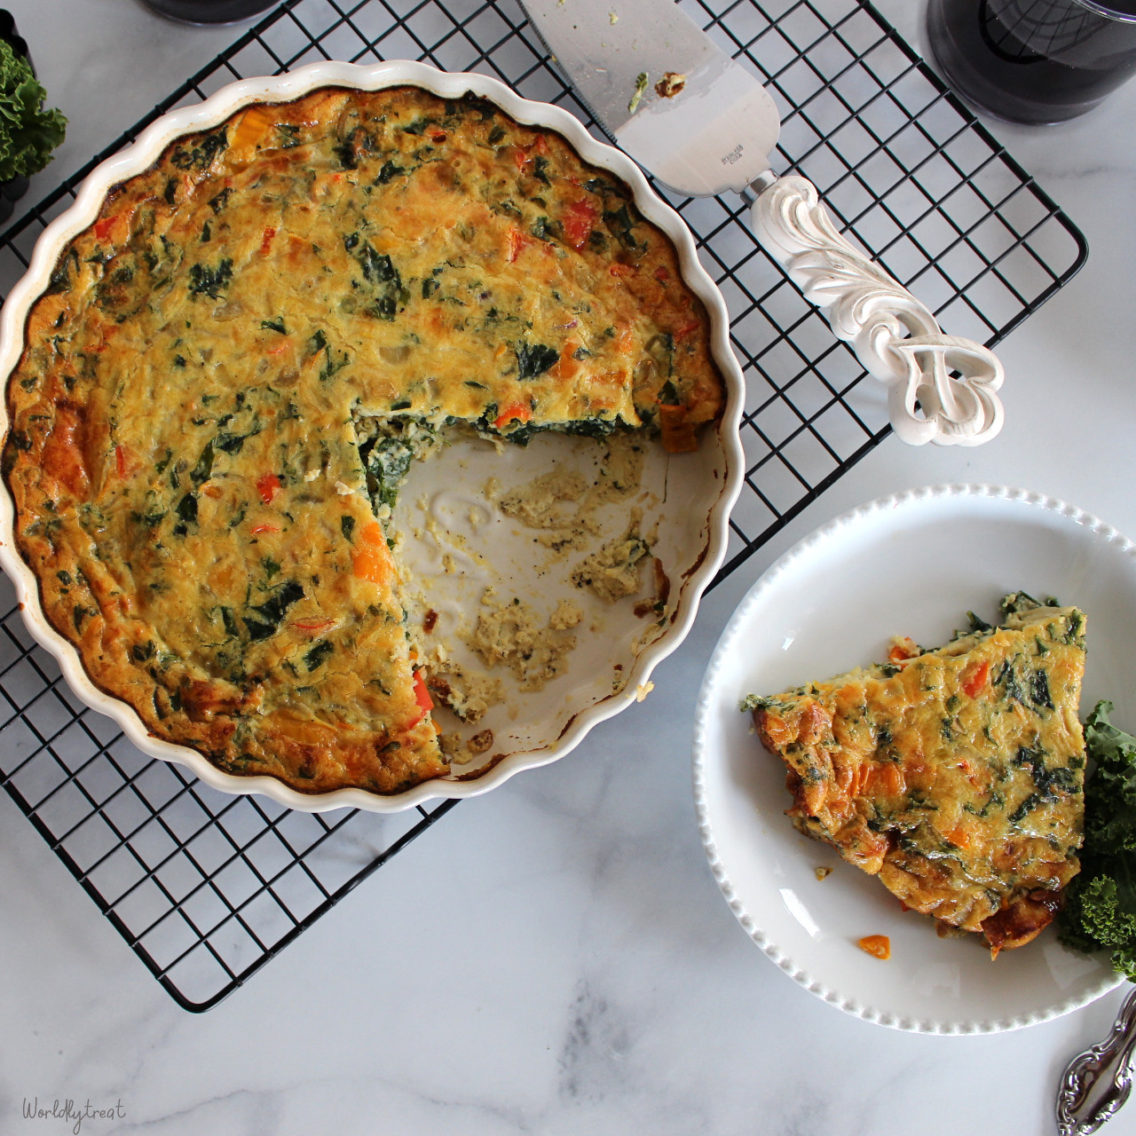 Crustless Vegetable and Sausage Quiche